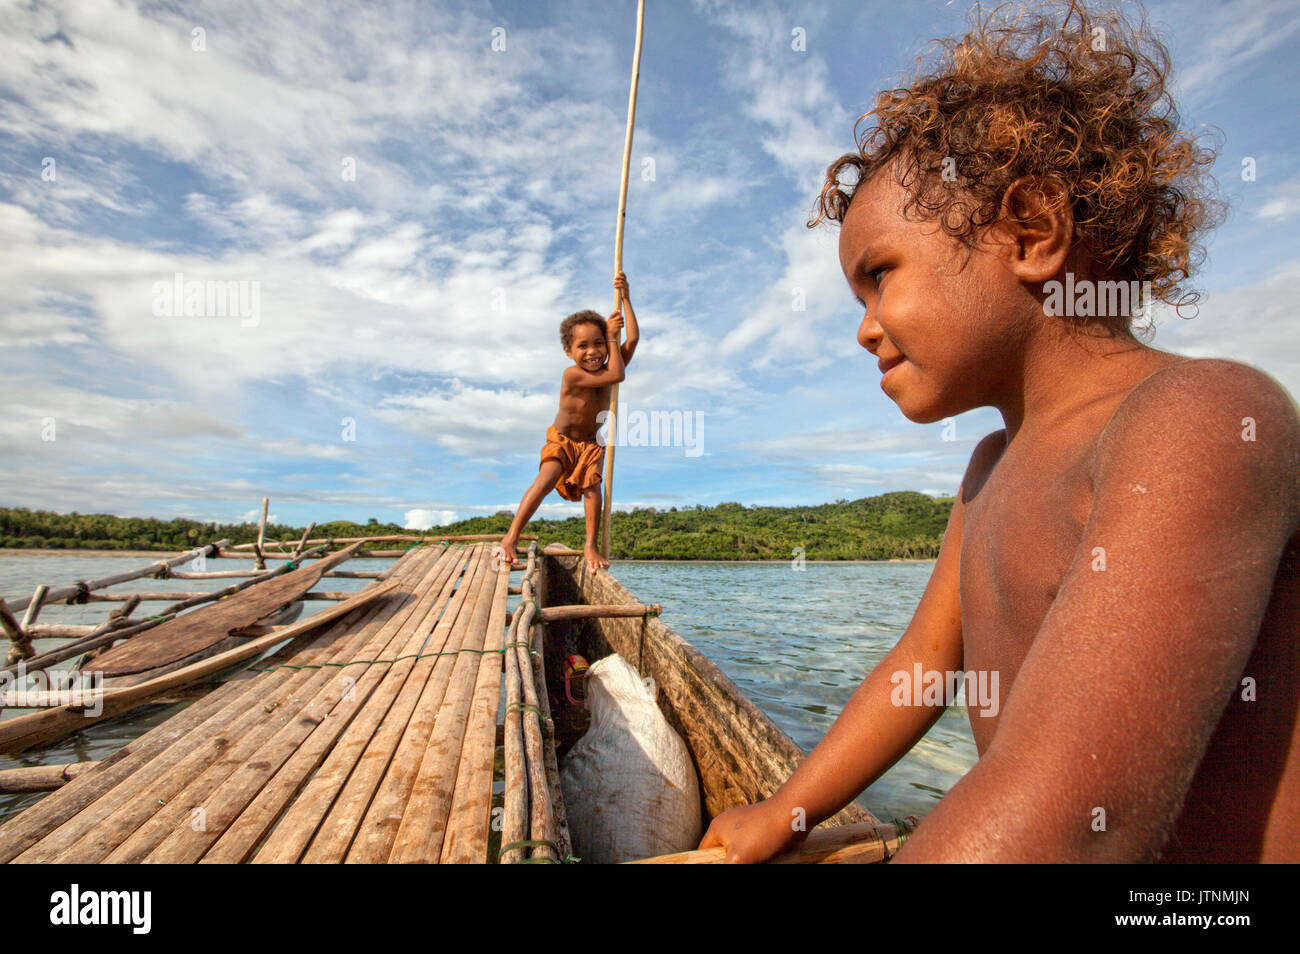 Children playing with a outrigger canoe in the village of Hessessai Bay at PanaTinai (Panatinane)island in the Louisiade Archipelago in Milne Bay Province, Papua New Guinea. The island has an area of 78 km2. The Louisiade Archipelago is a string of ten larger volcanic islands frequently fringed by coral reefs, and 90 smaller coral islands located 200 km southeast of New Guinea, stretching over more than 160 km and spread over an ocean area of 26,000 km? between the Solomon Sea to the north and the Coral Sea to the south. The aggregate land area of the islands is - Stock Image